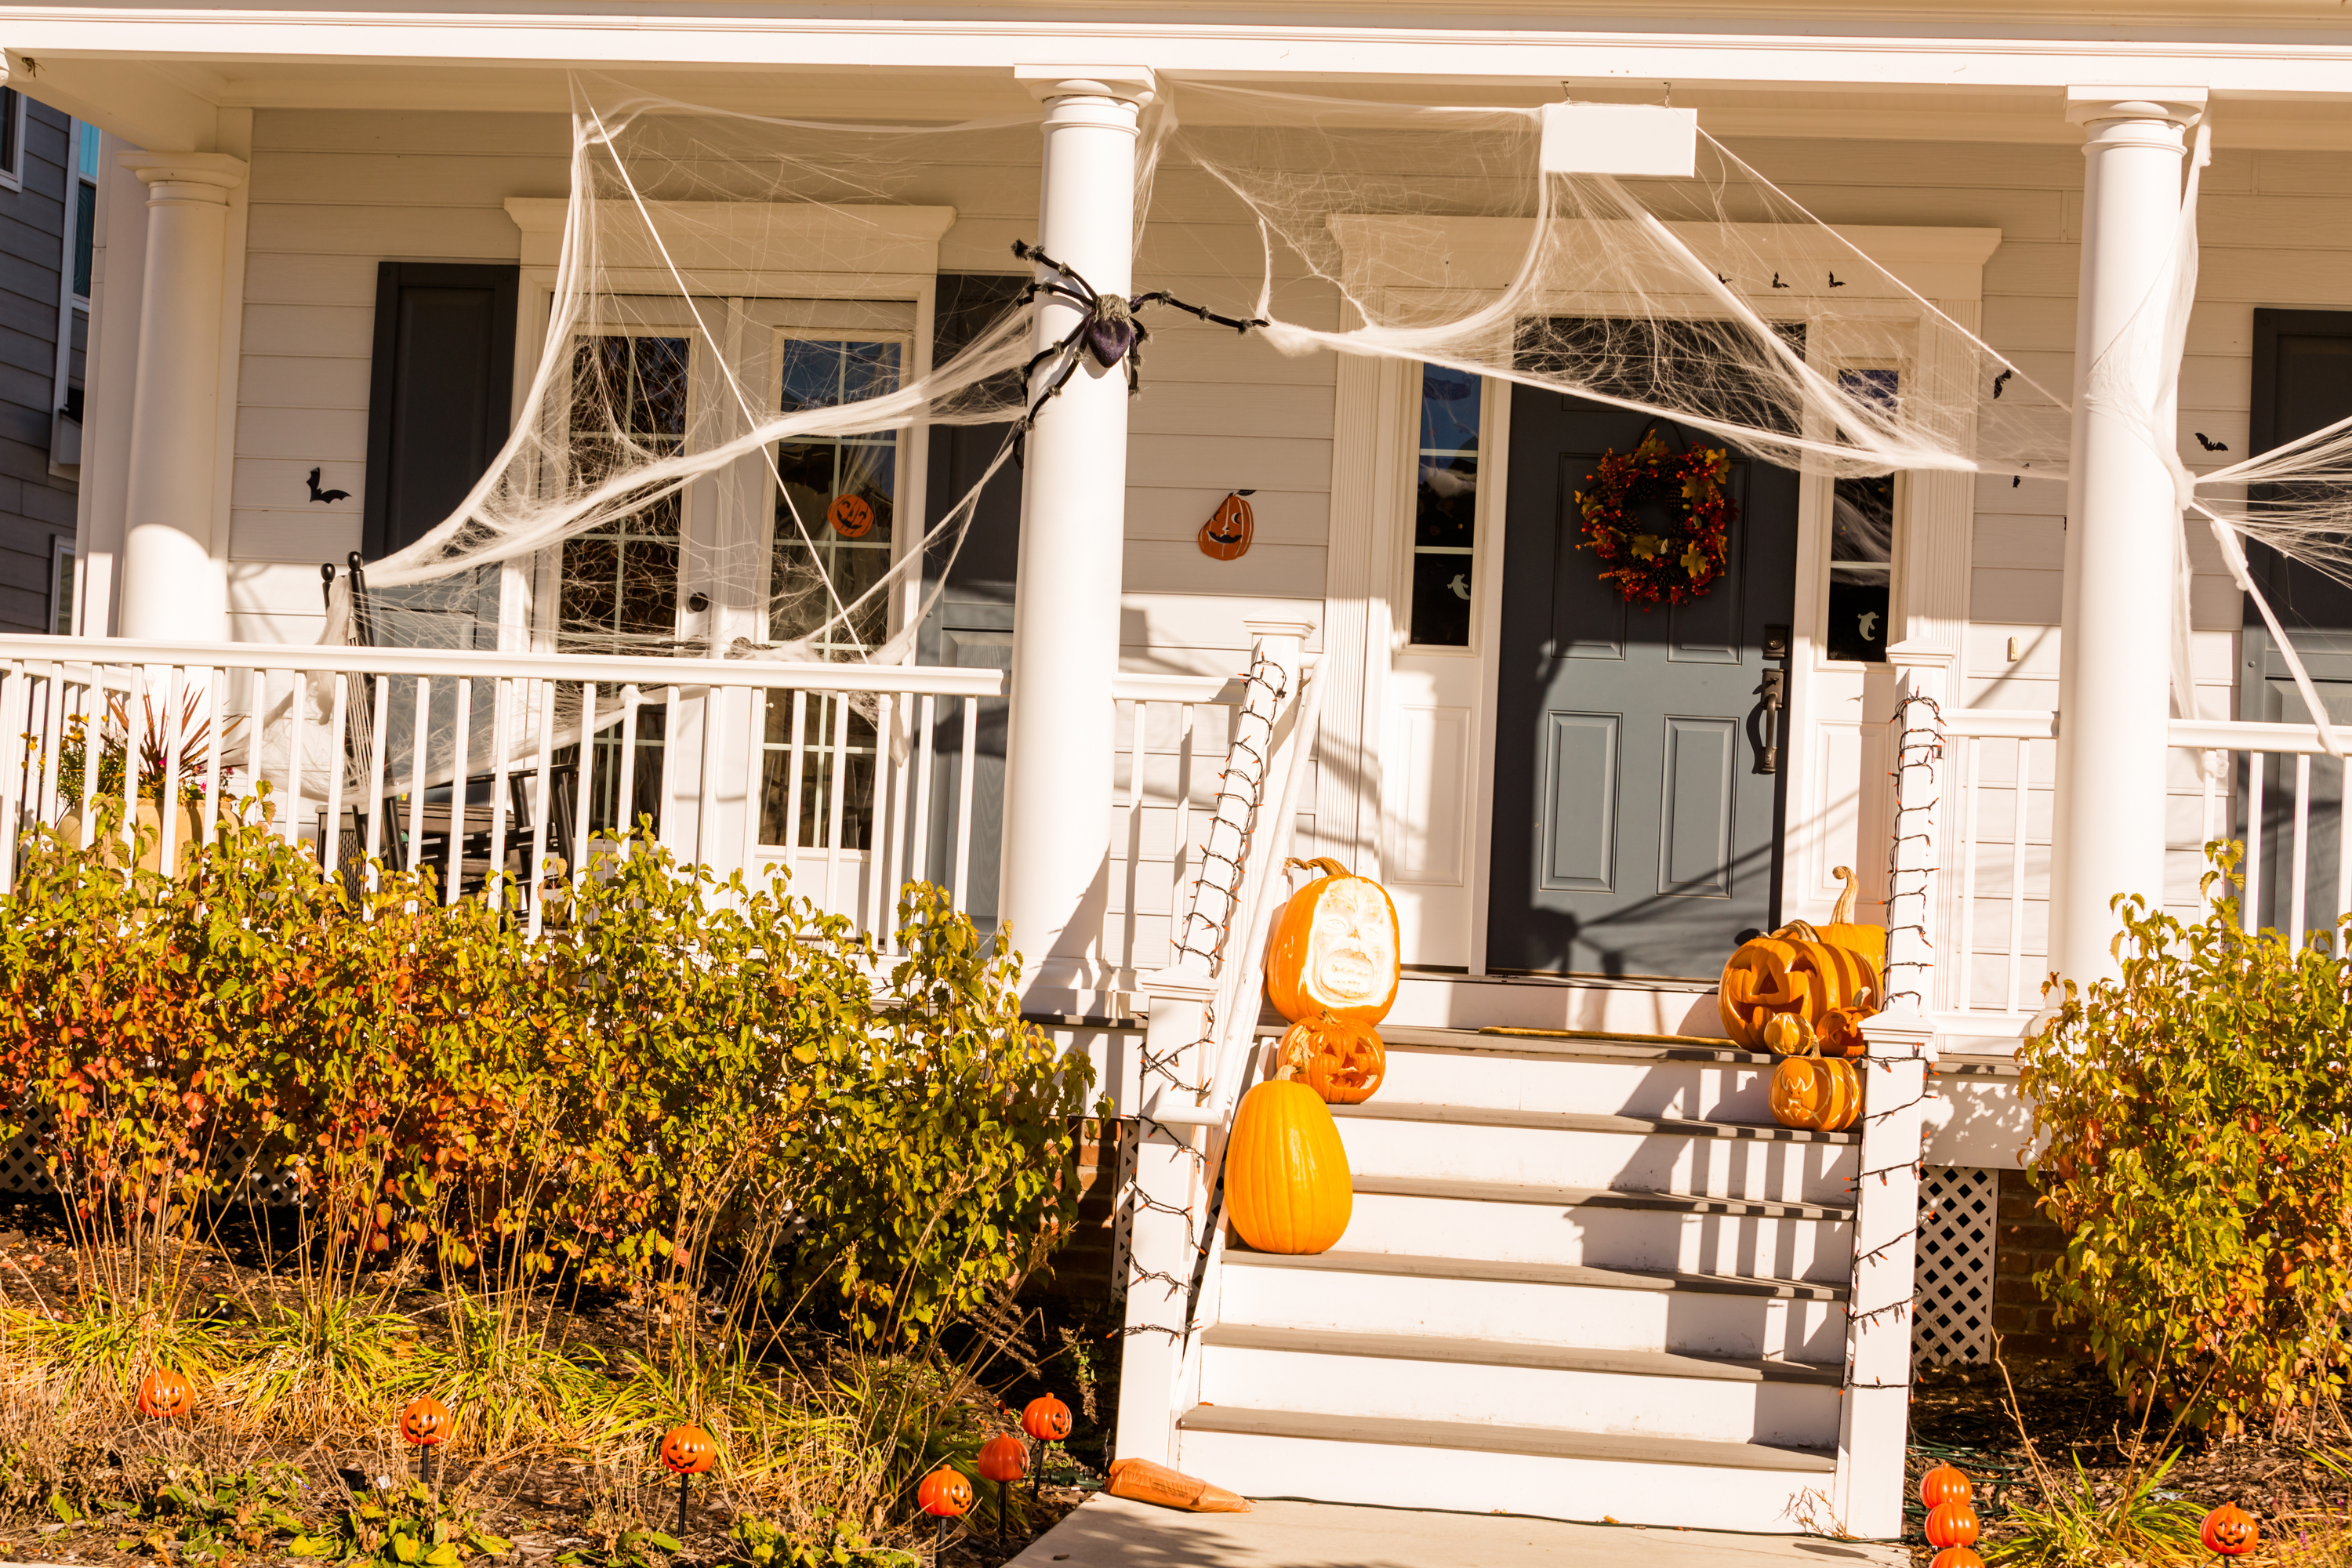 Pumpkins, spider webs, halloween decor